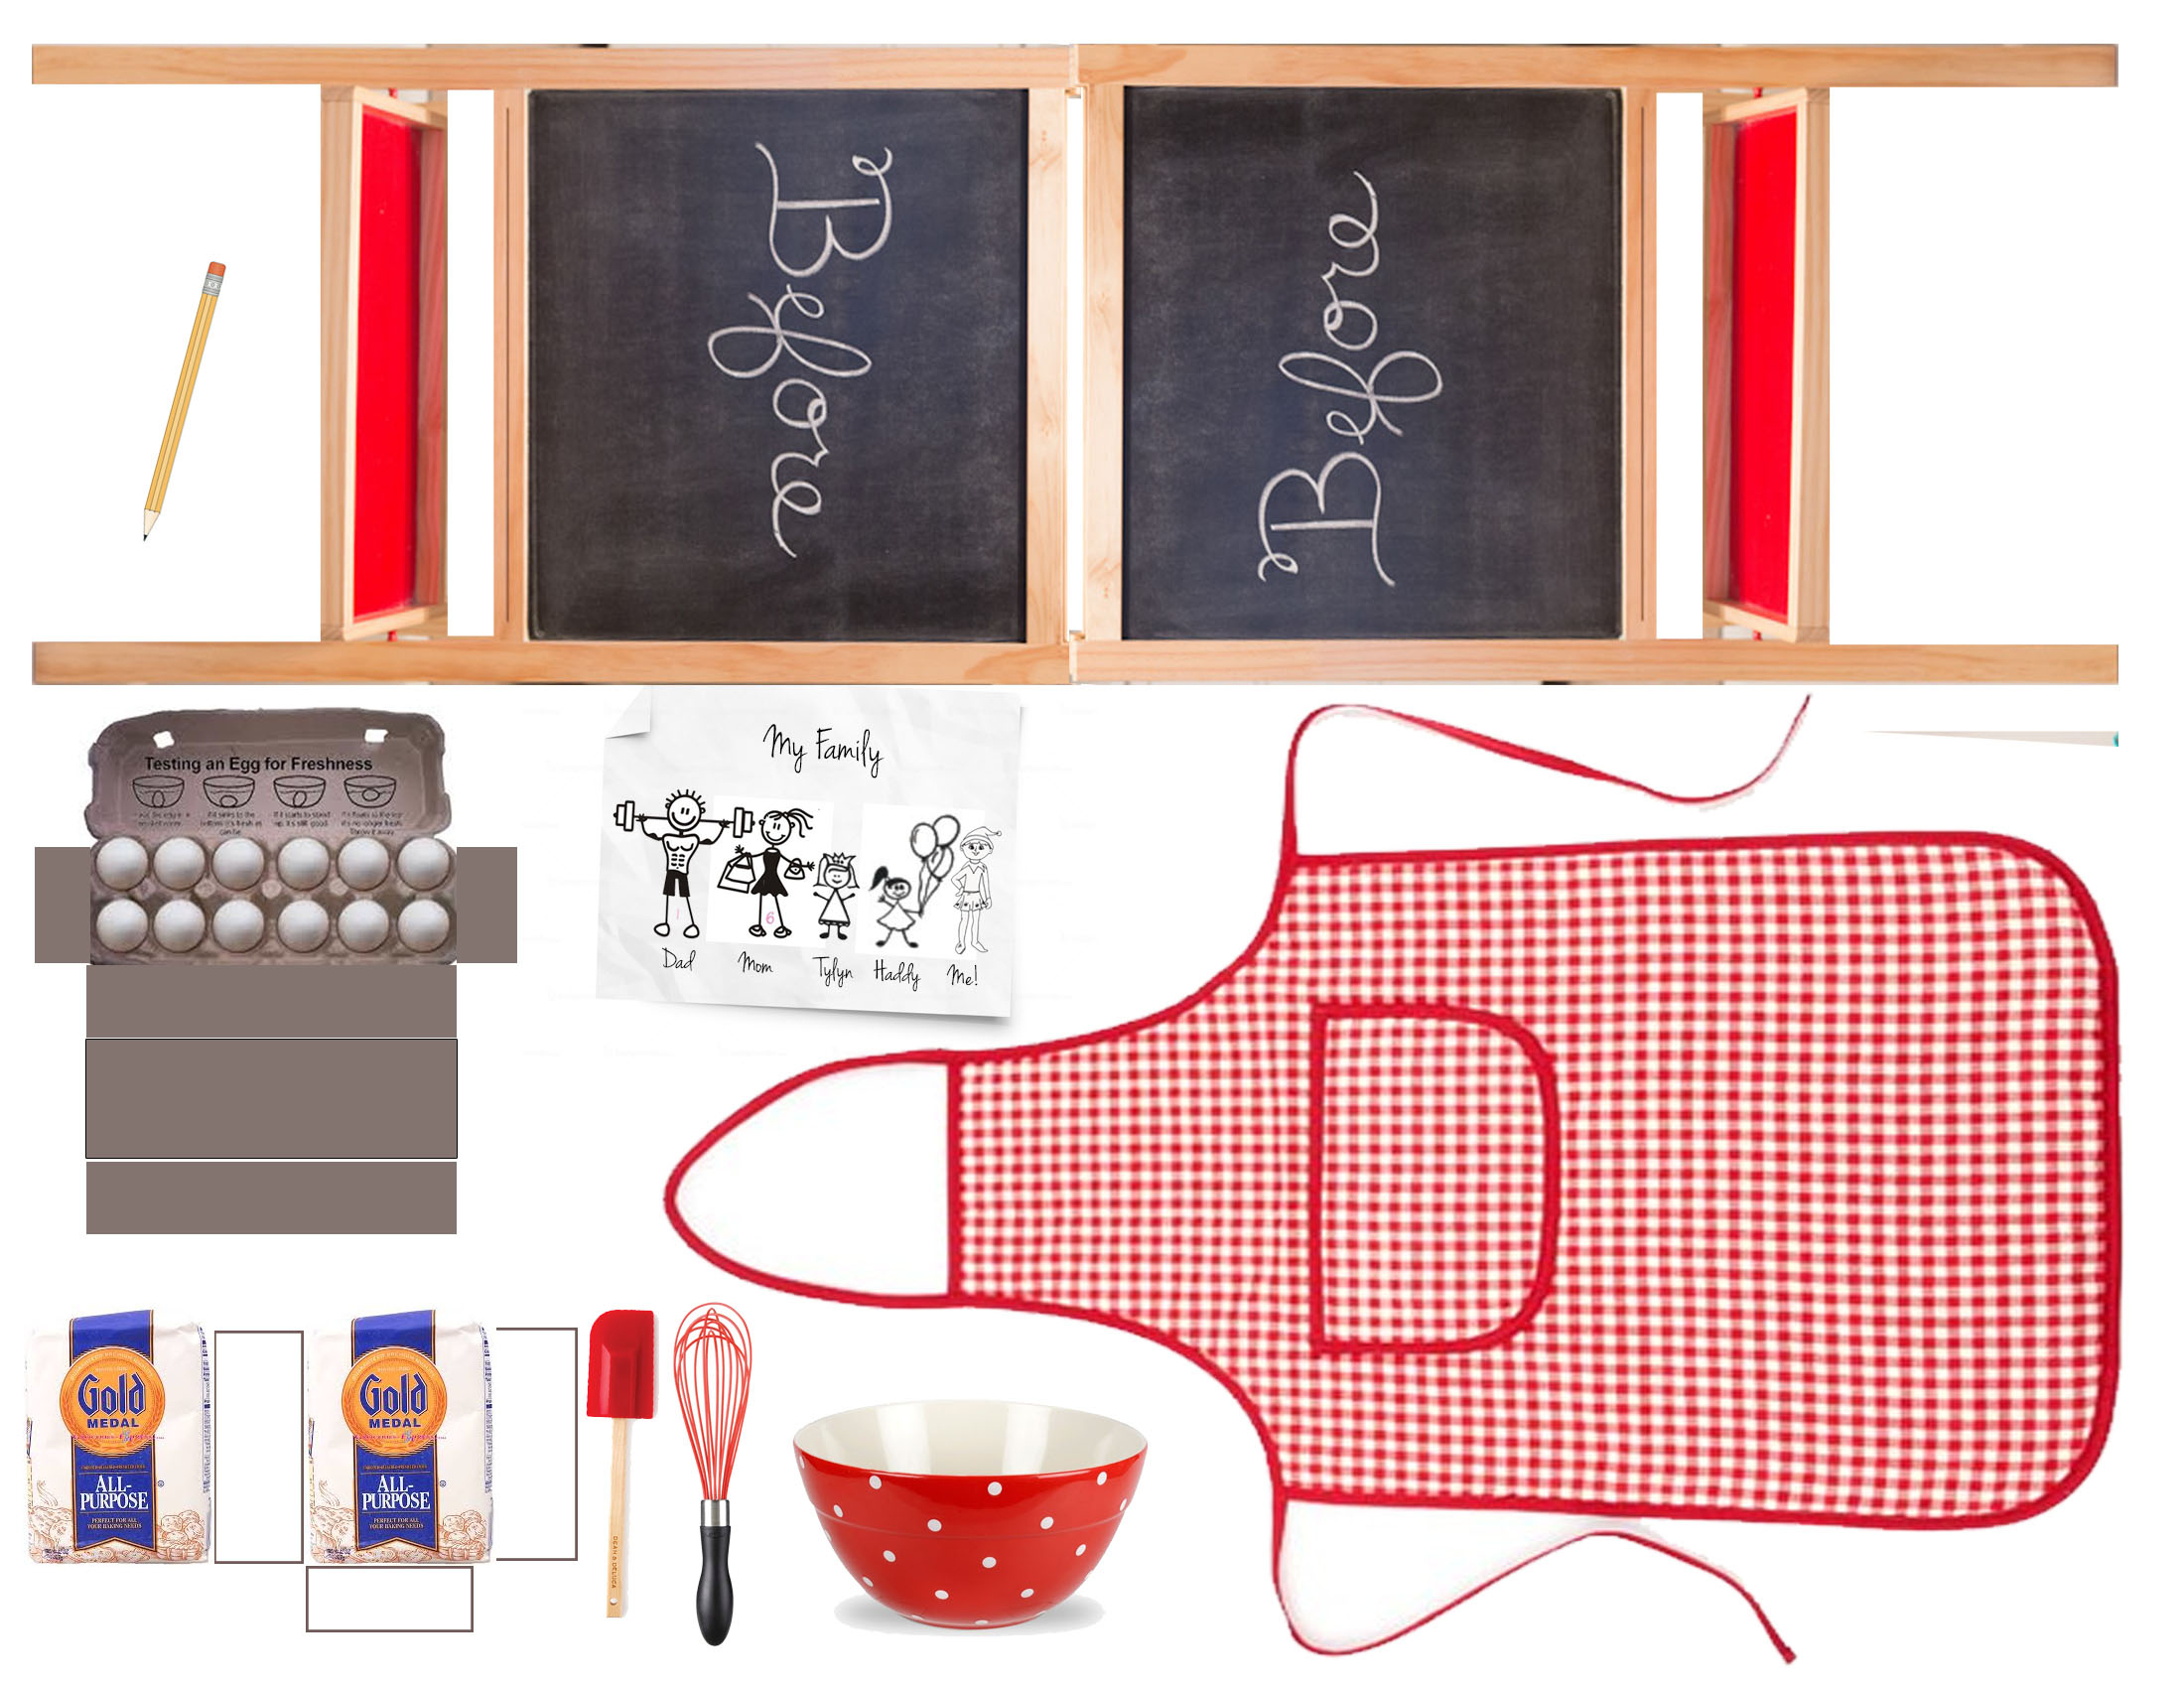 Elf On The Shelf Free Printable Props – The Glamorous Project - Elf On The Shelf Printable Props Free